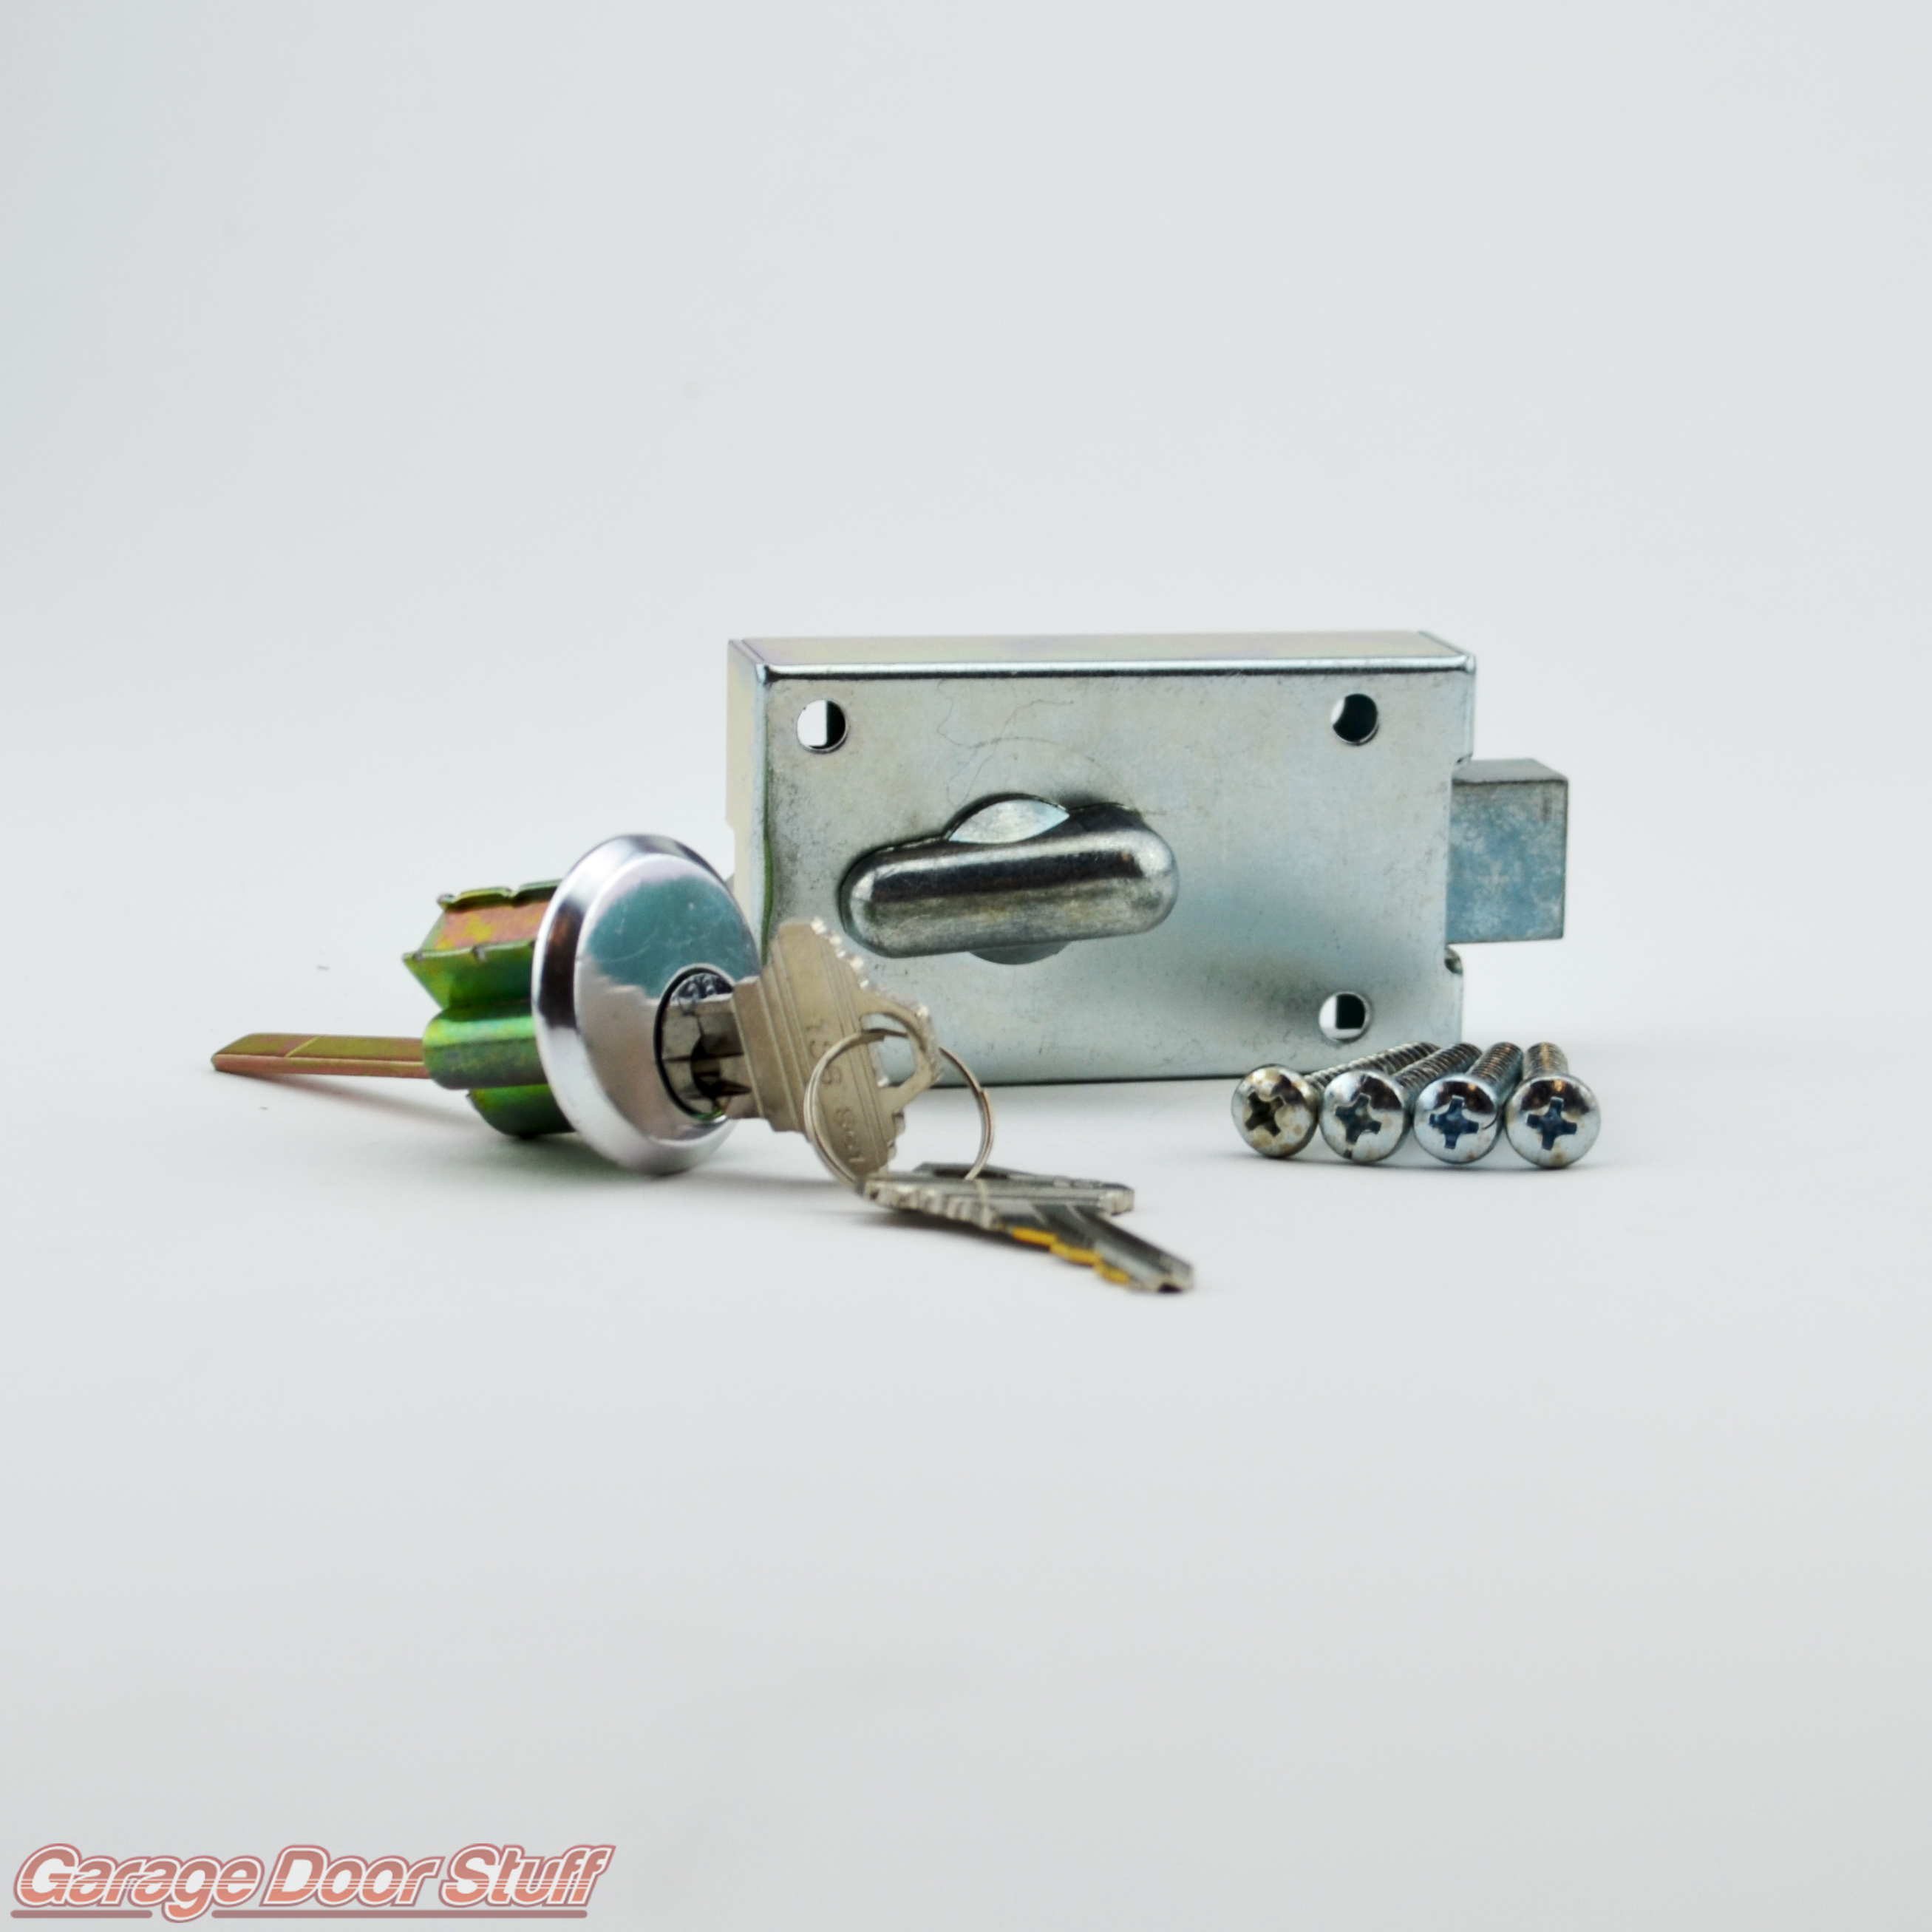 2614 #855446 Garage Door Lock save image Garage Doors Replacement Parts 37272614